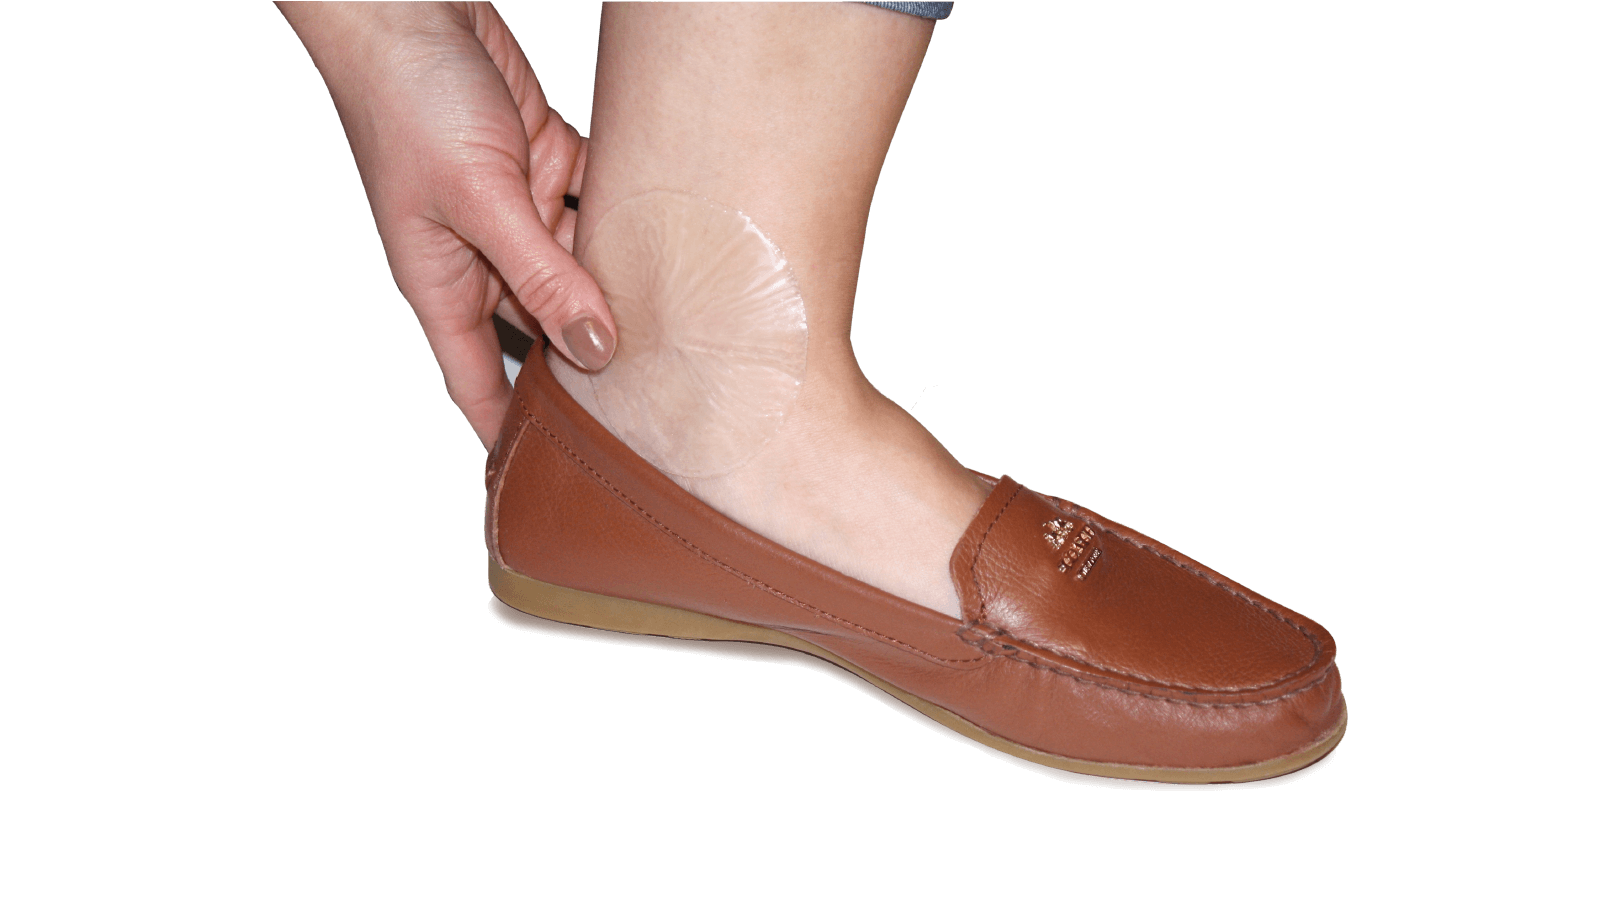 Spenco 2nd skin circles for blister prevention placed on an ankle